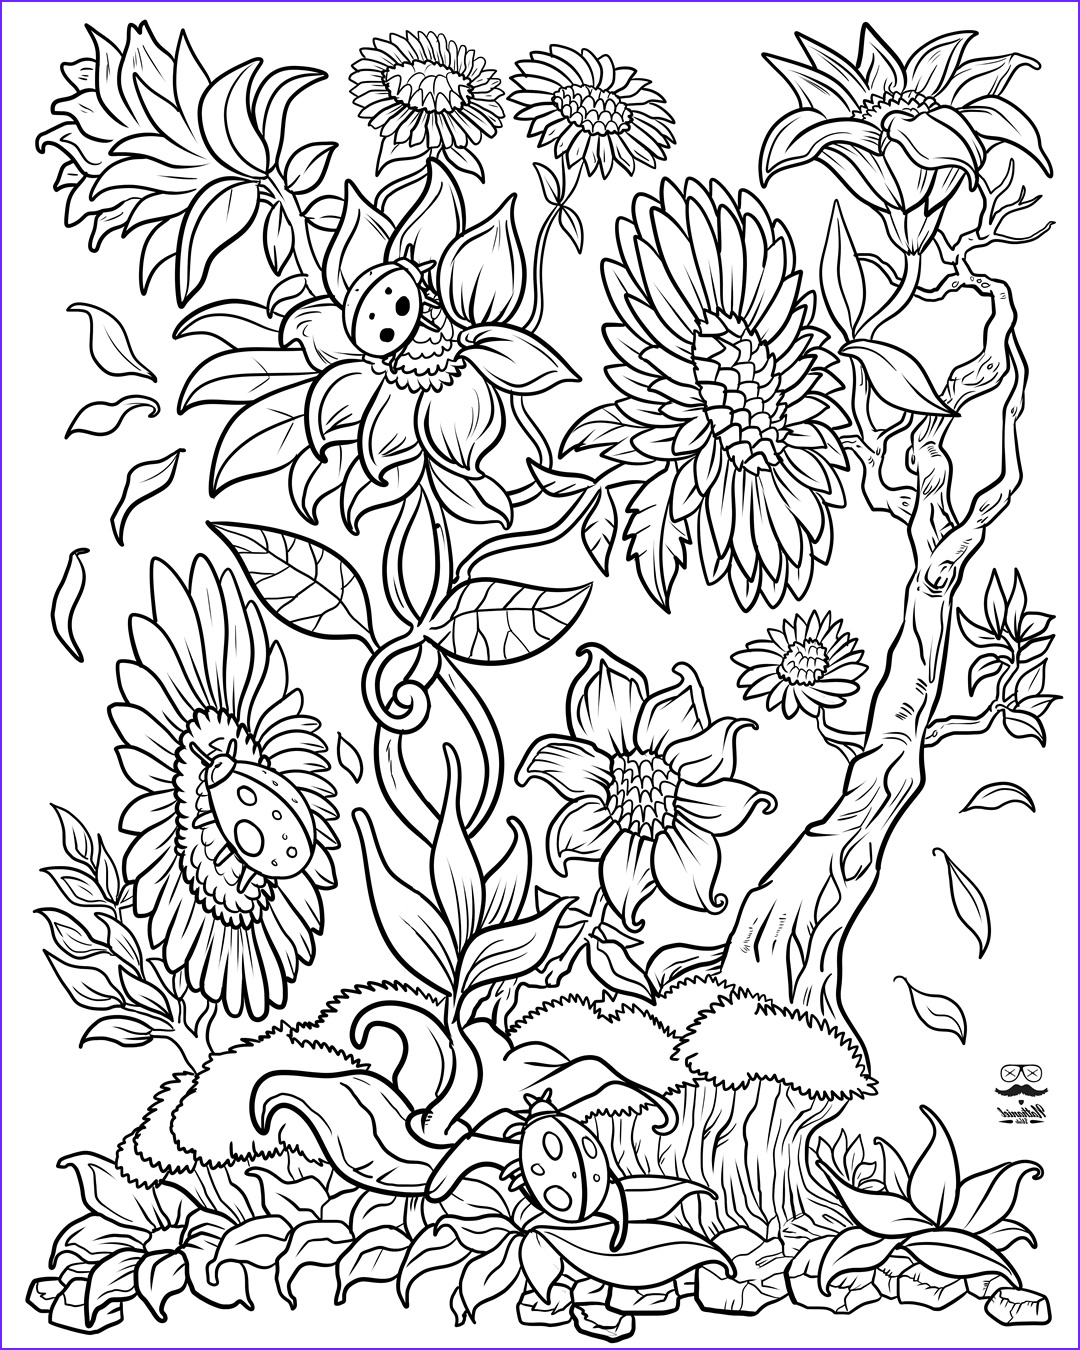 Free Coloring Book Pages for Adults New Photography Floral Fantasy Digital Version Adult Coloring Book